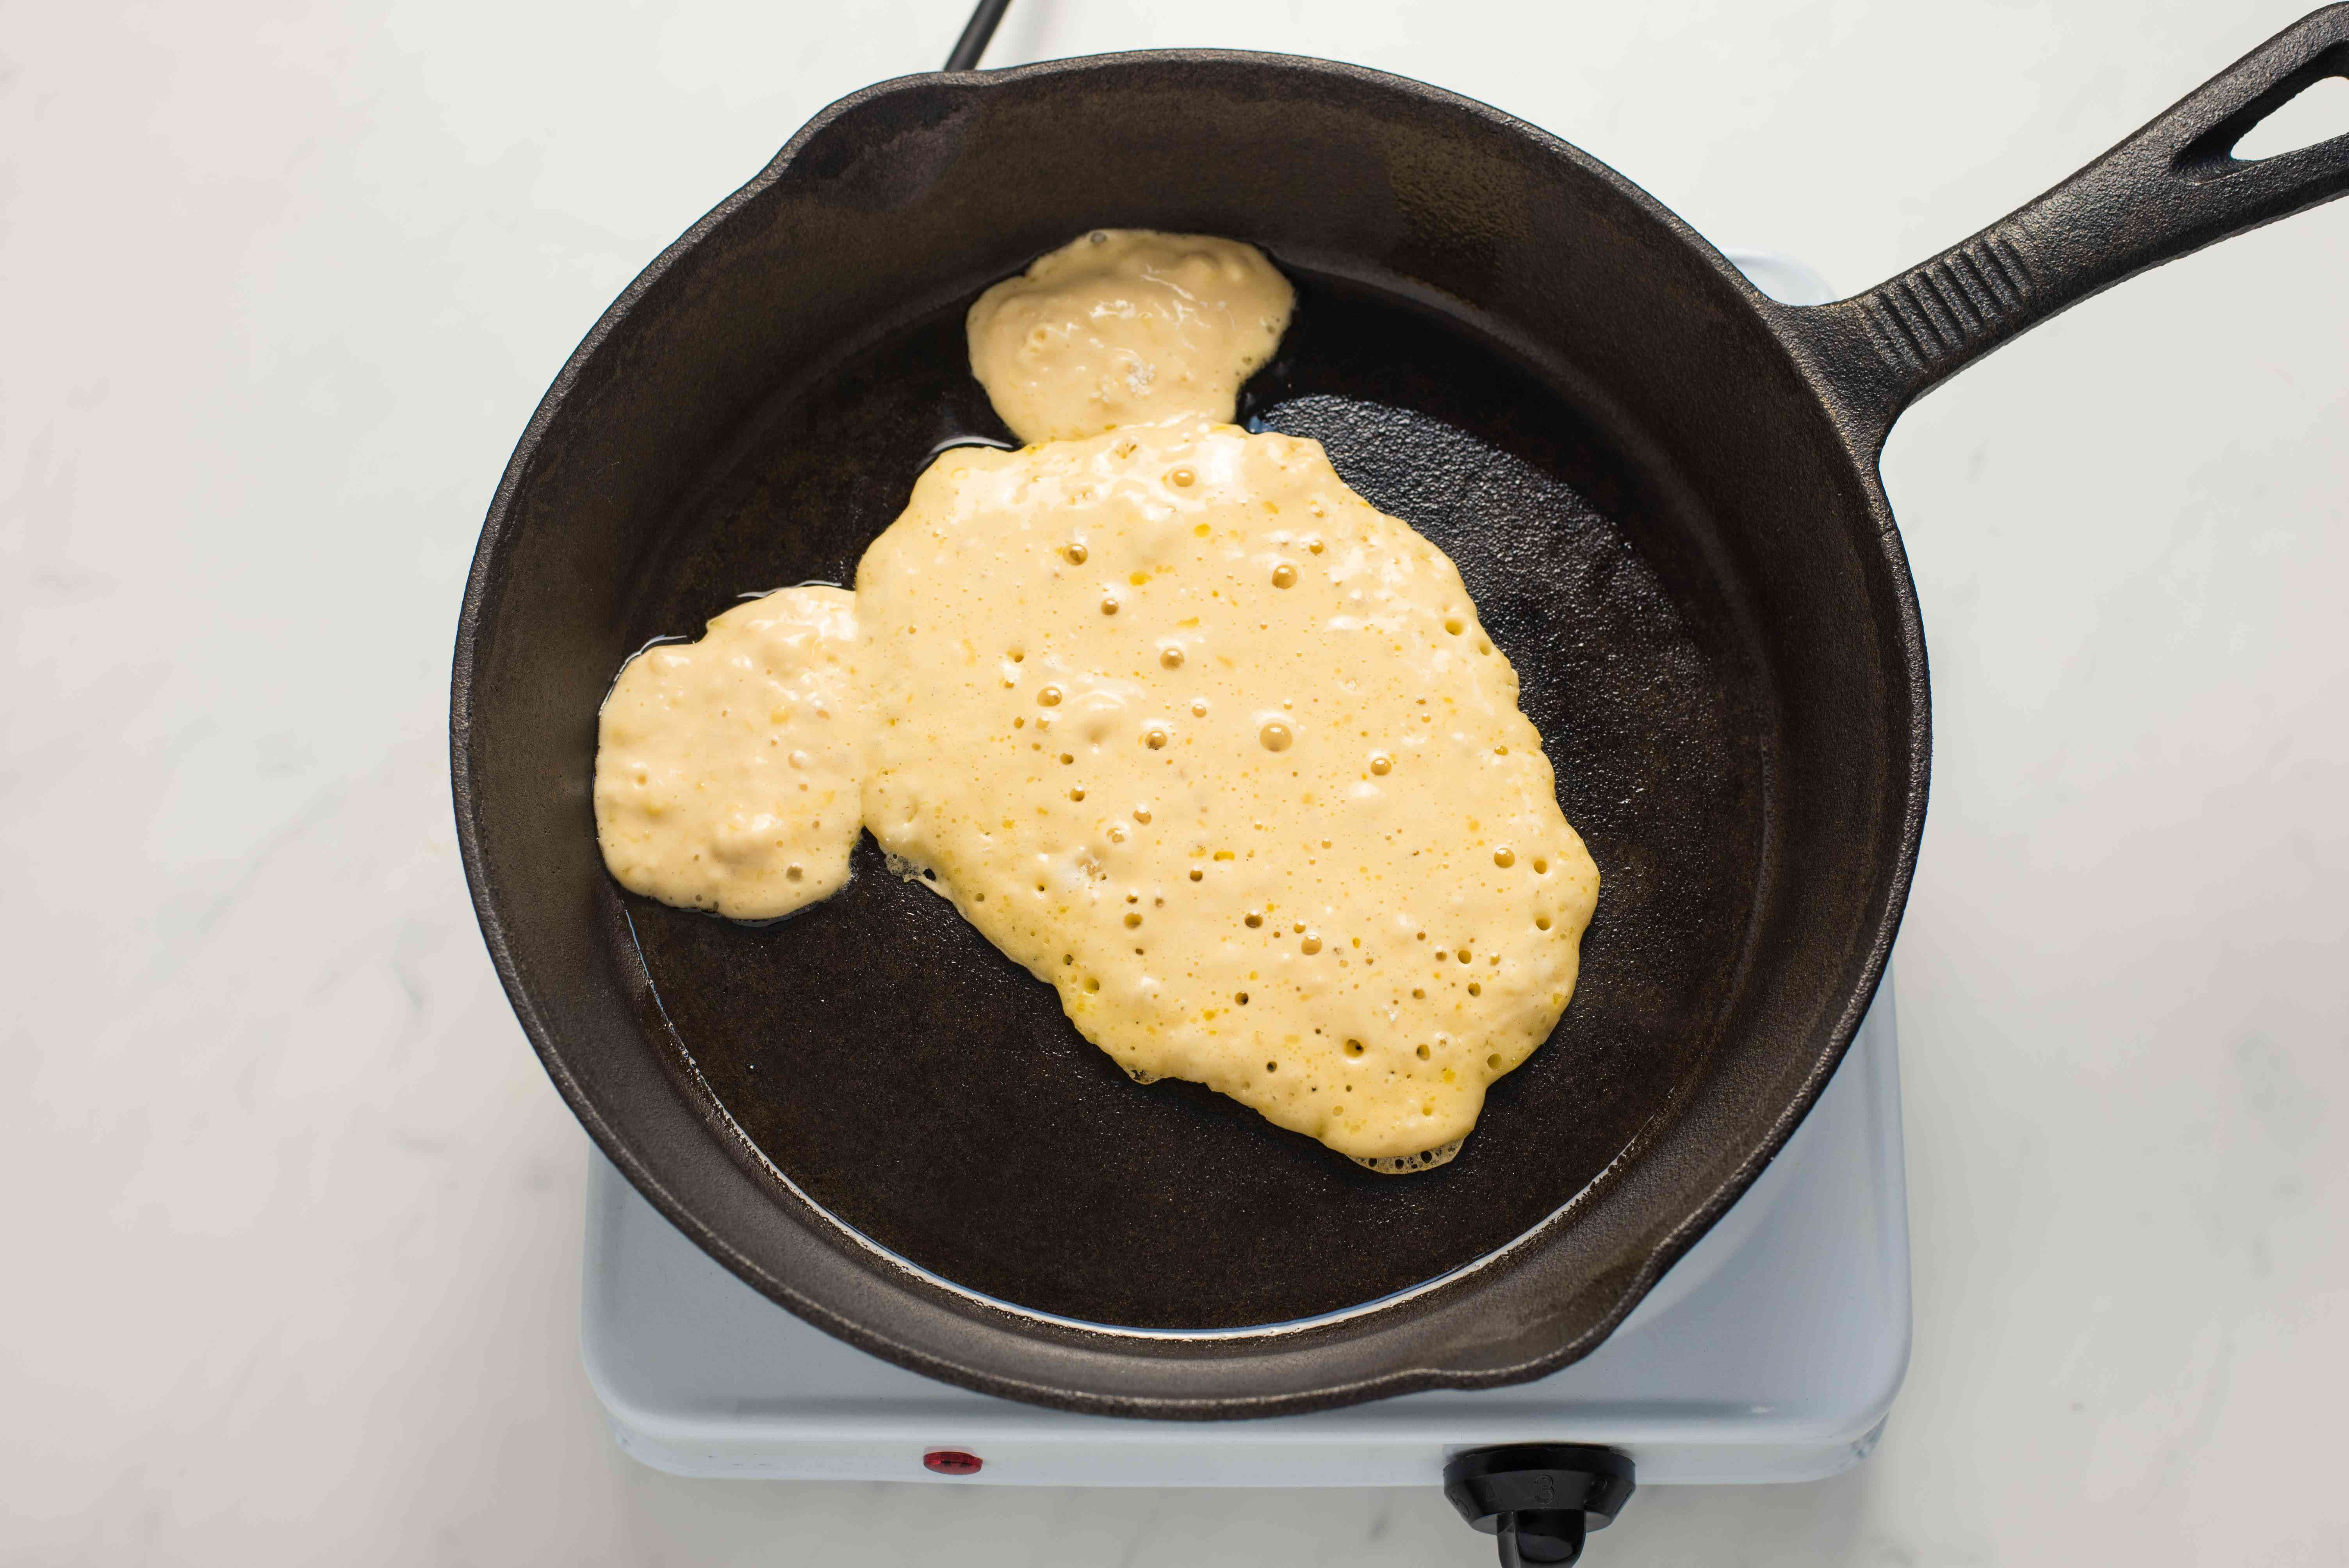 Pour batter on pan